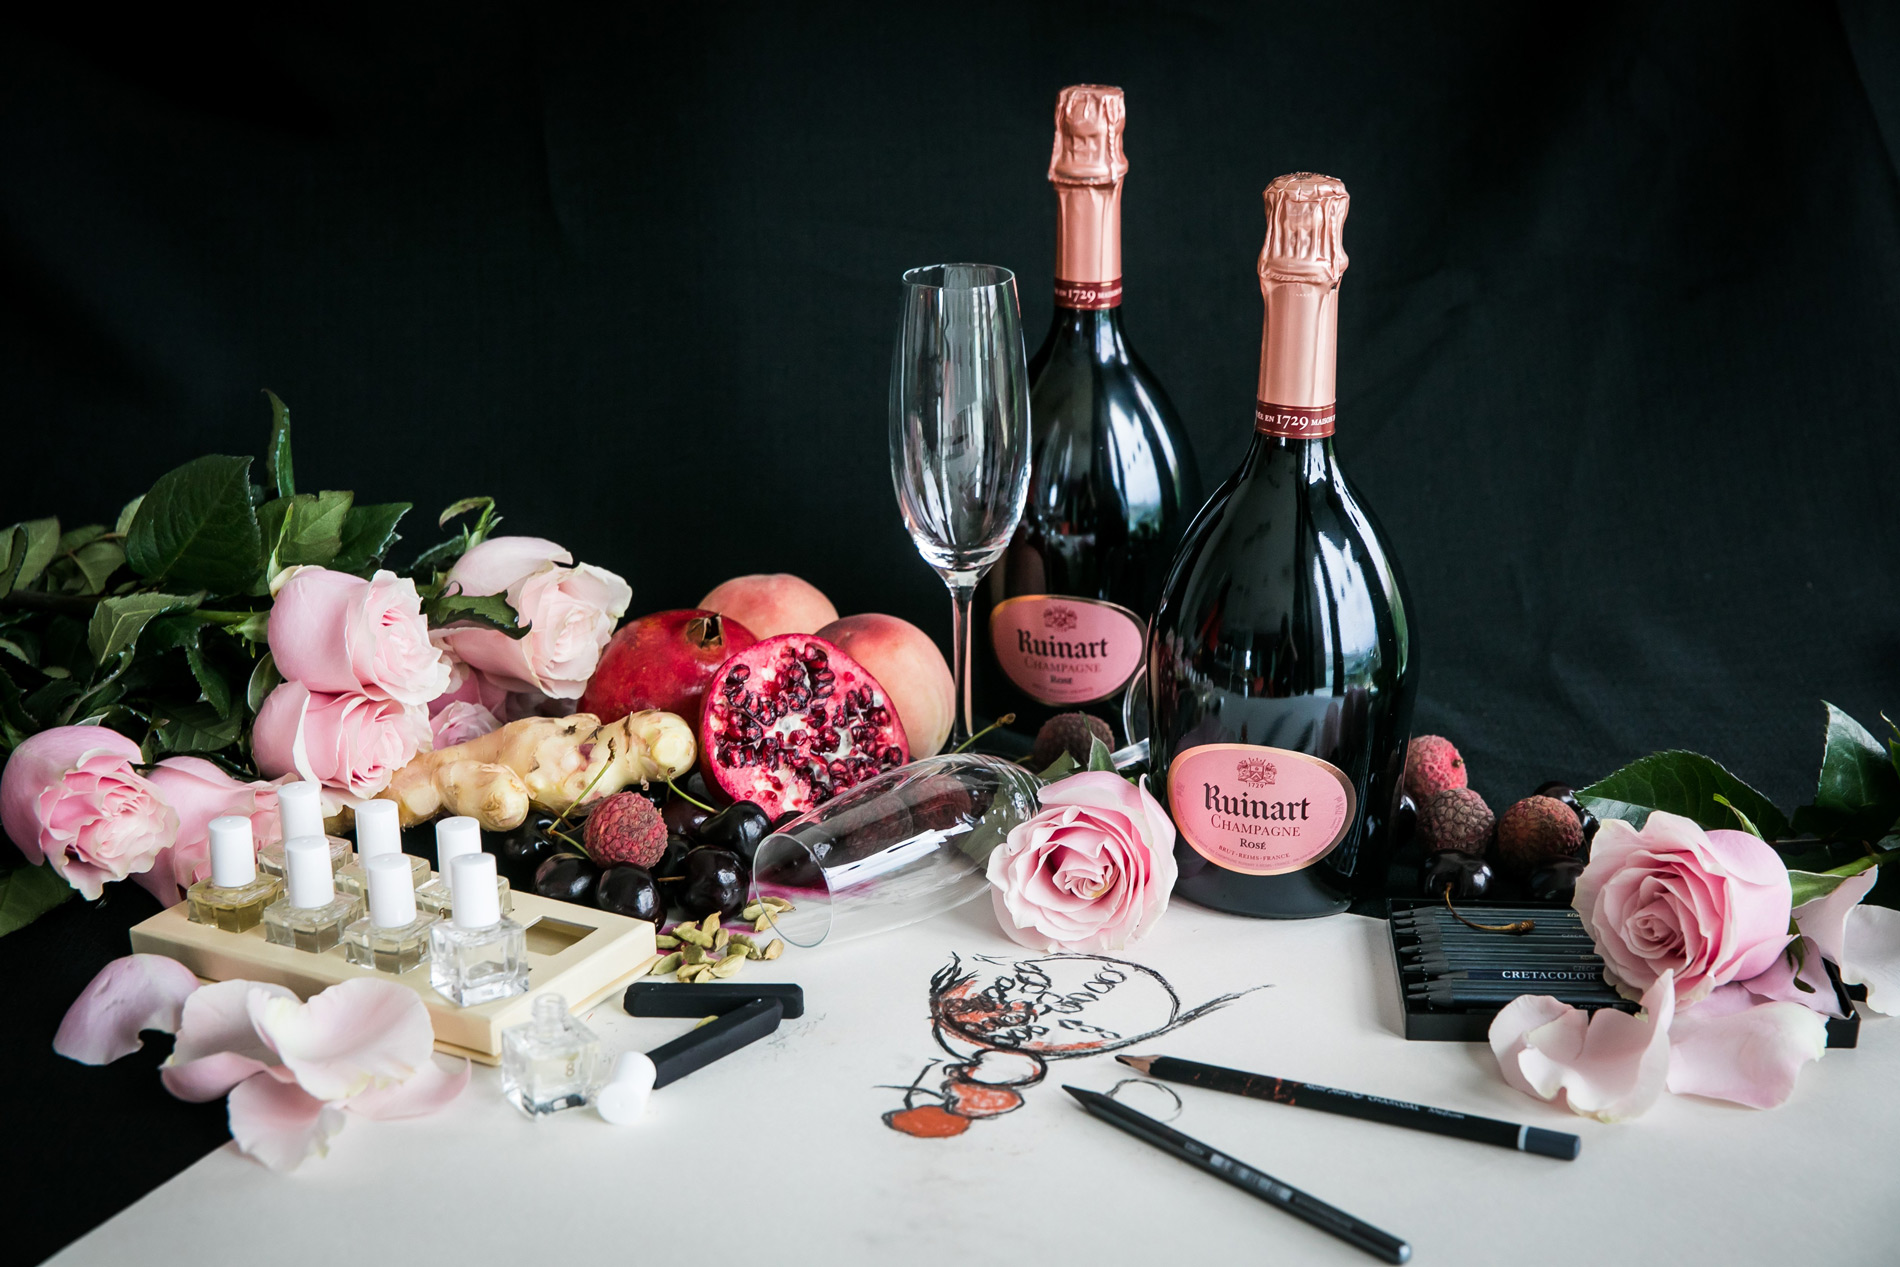 Media Office Mca Australia Catriona Rosy Shoulder Bag Maroon Bottles Of Champagne With Roses And Drawing Utensils On A Table